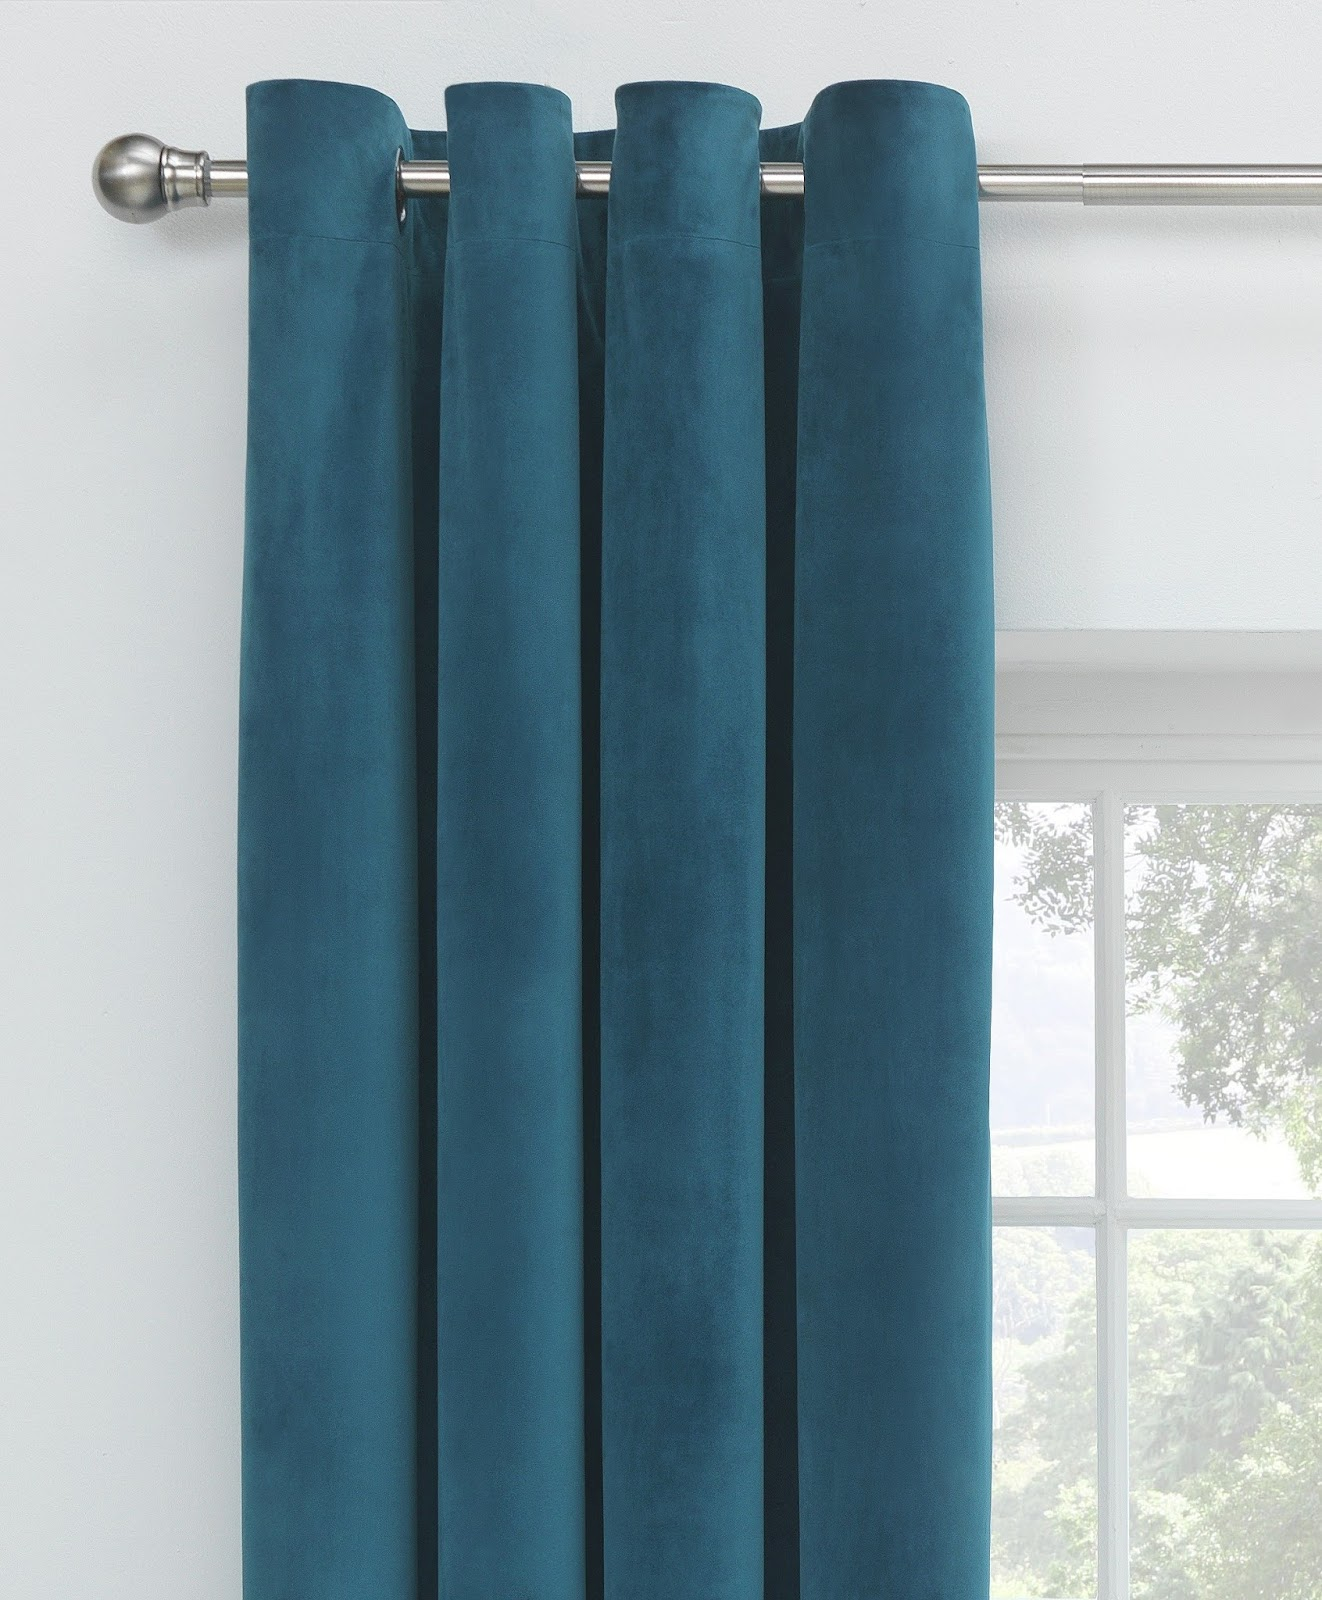 How To Put A Curtain Scarf Up Rod Rods